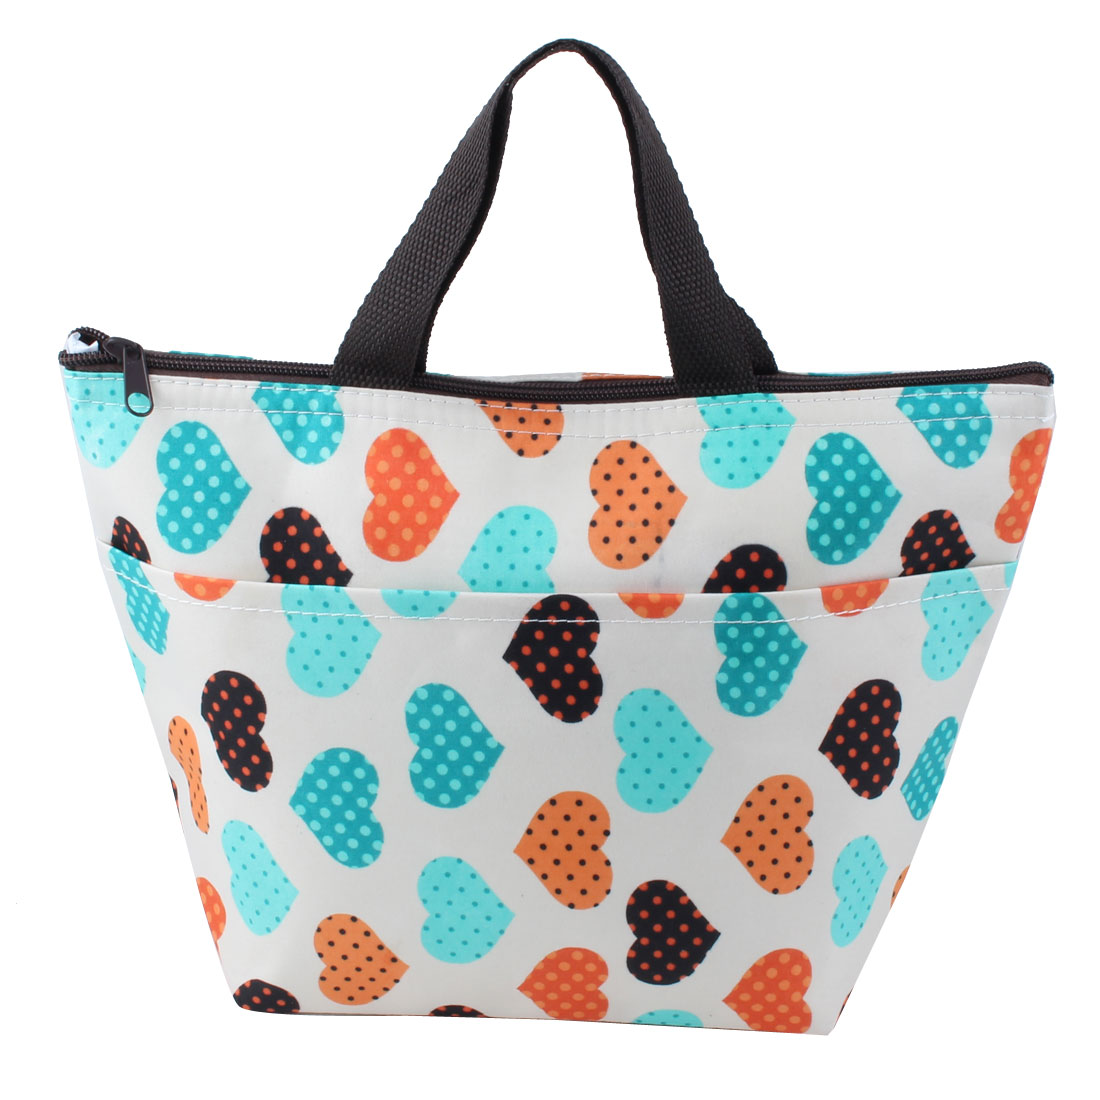 Outdoor Portable Zipper Closure Heart Pattern Insulated Cooler Lunch Carry Tote Bag Picnic Box